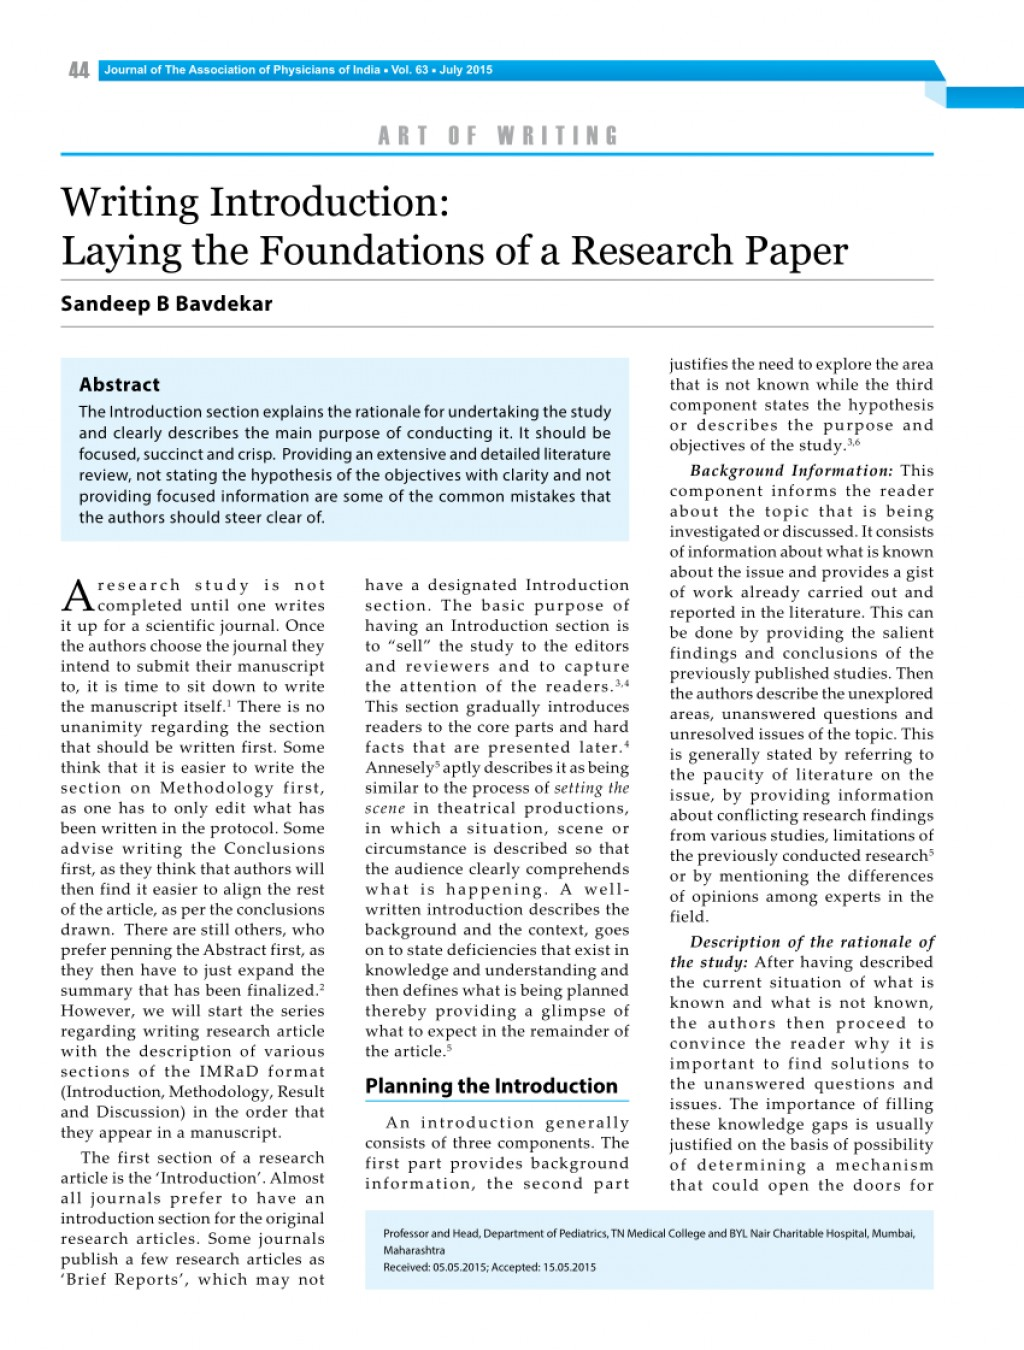 005 Research Paper How Do You Write Good Introduction For Amazing A Paragraph Large